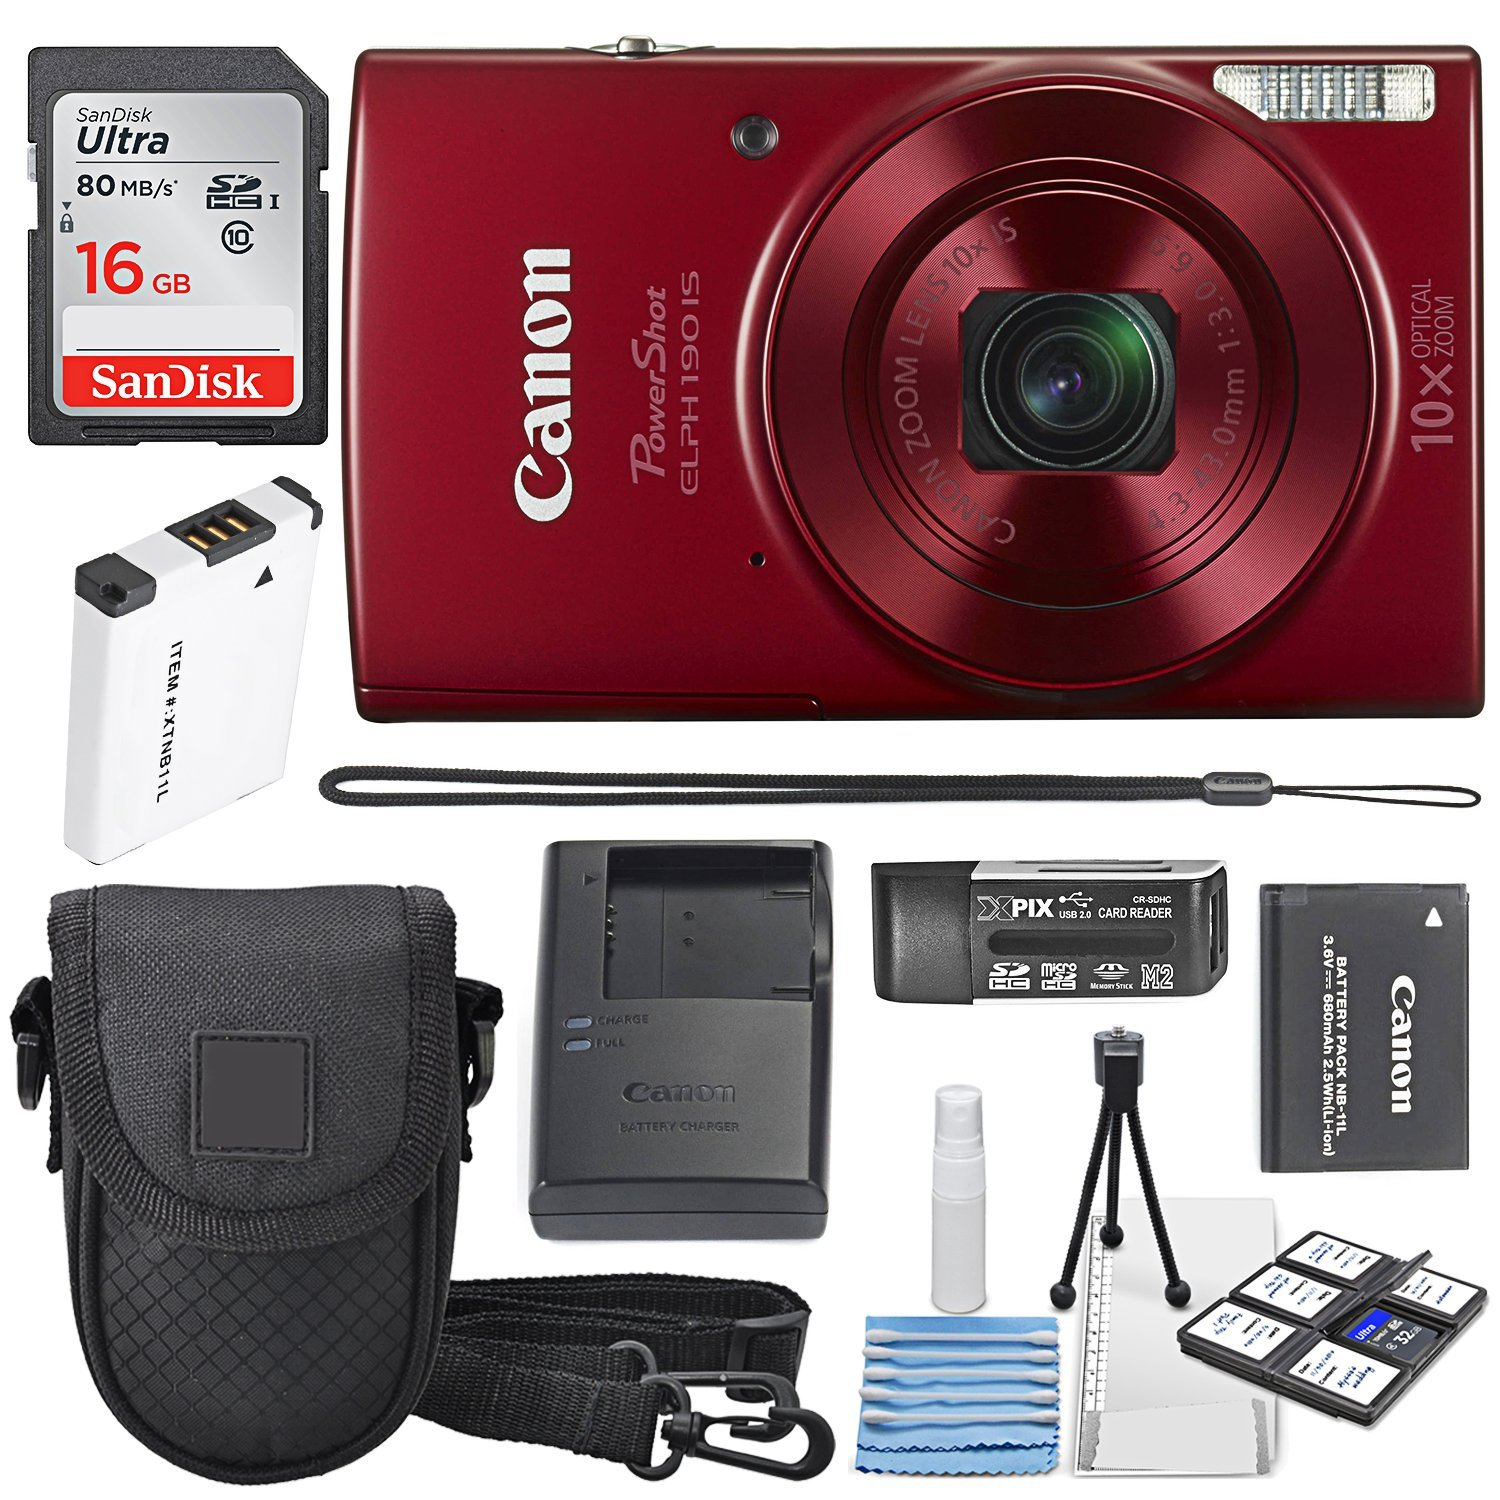 Canon PowerShot ELPH 190 IS Digital Camera (Red) with 10x Optical Zoom and Built-In Wi-Fi with 16GB SDHC + Replacement battery + Protective camera case Along with Deluxe Cleaning Bundle by Canon